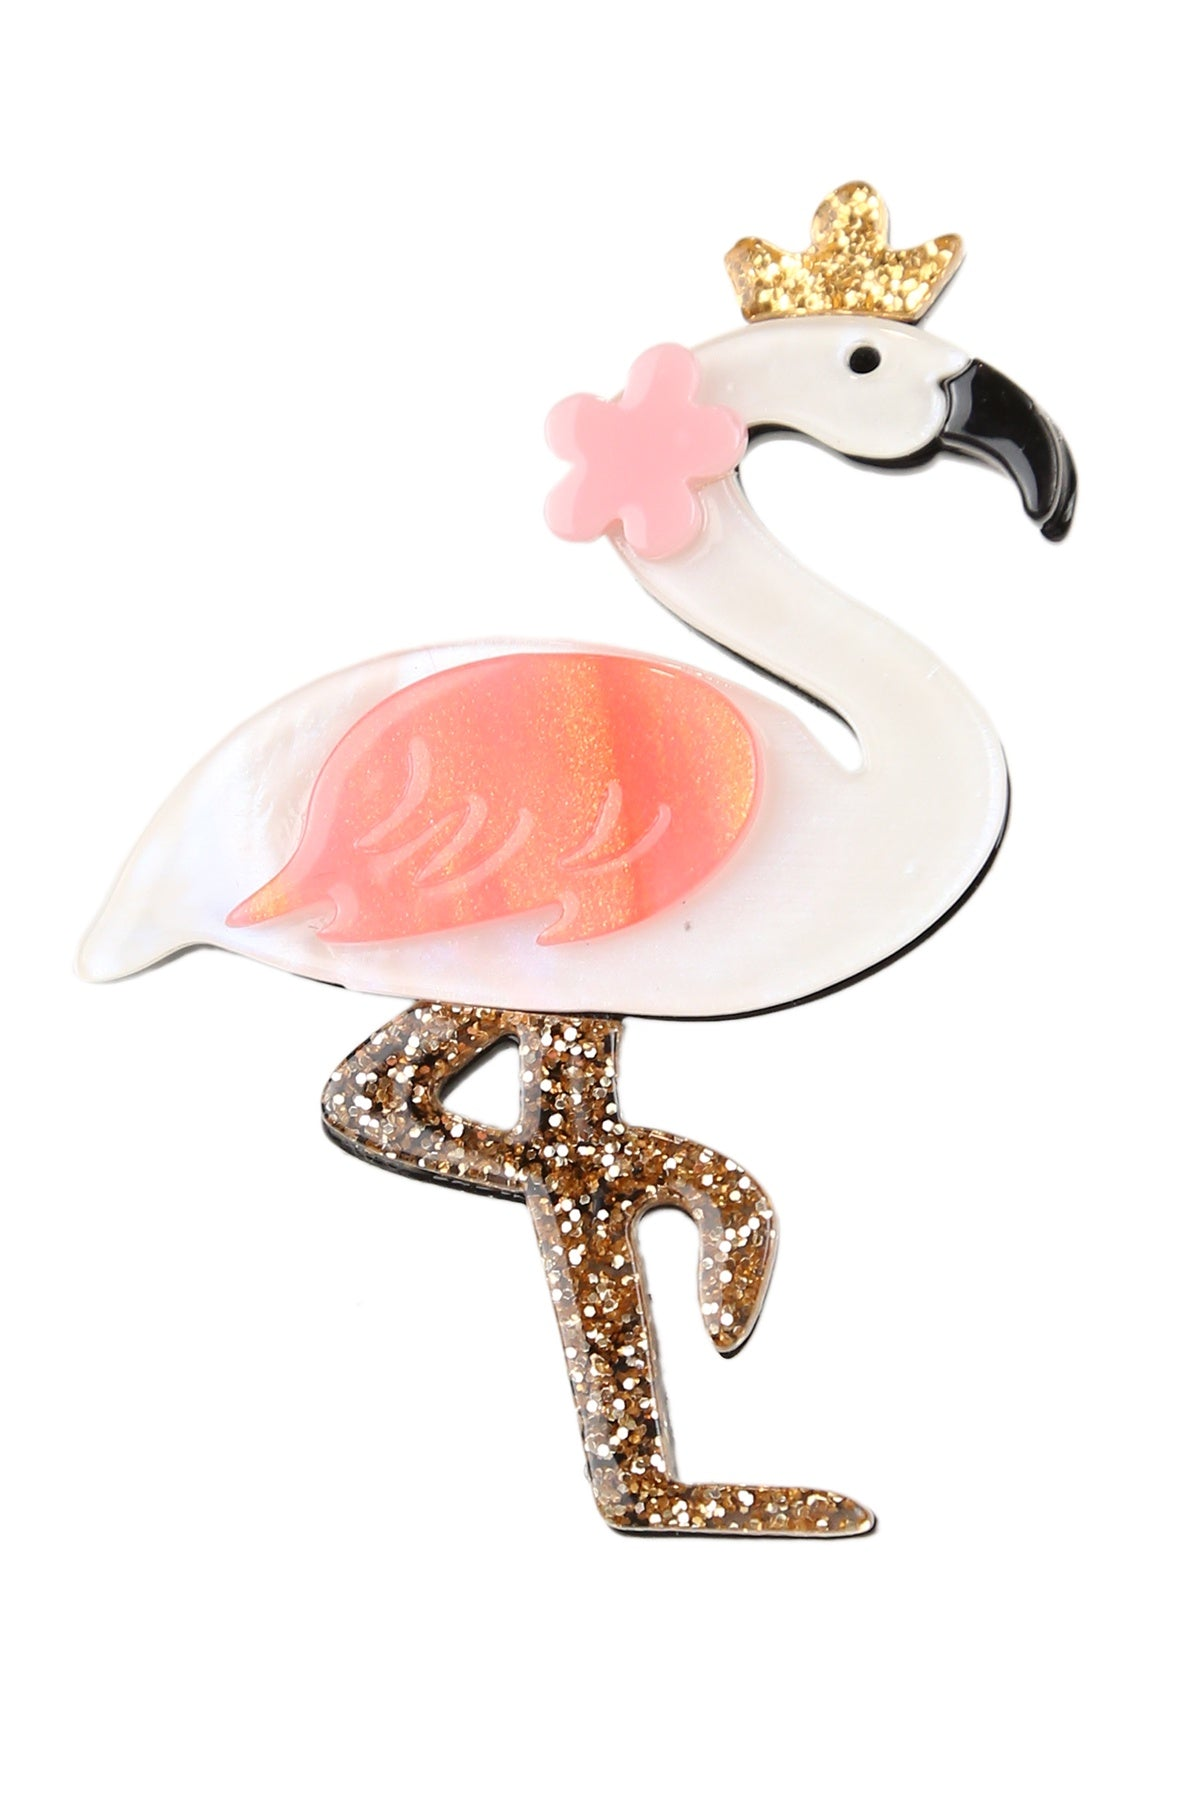 Danica The Flamingo Broach